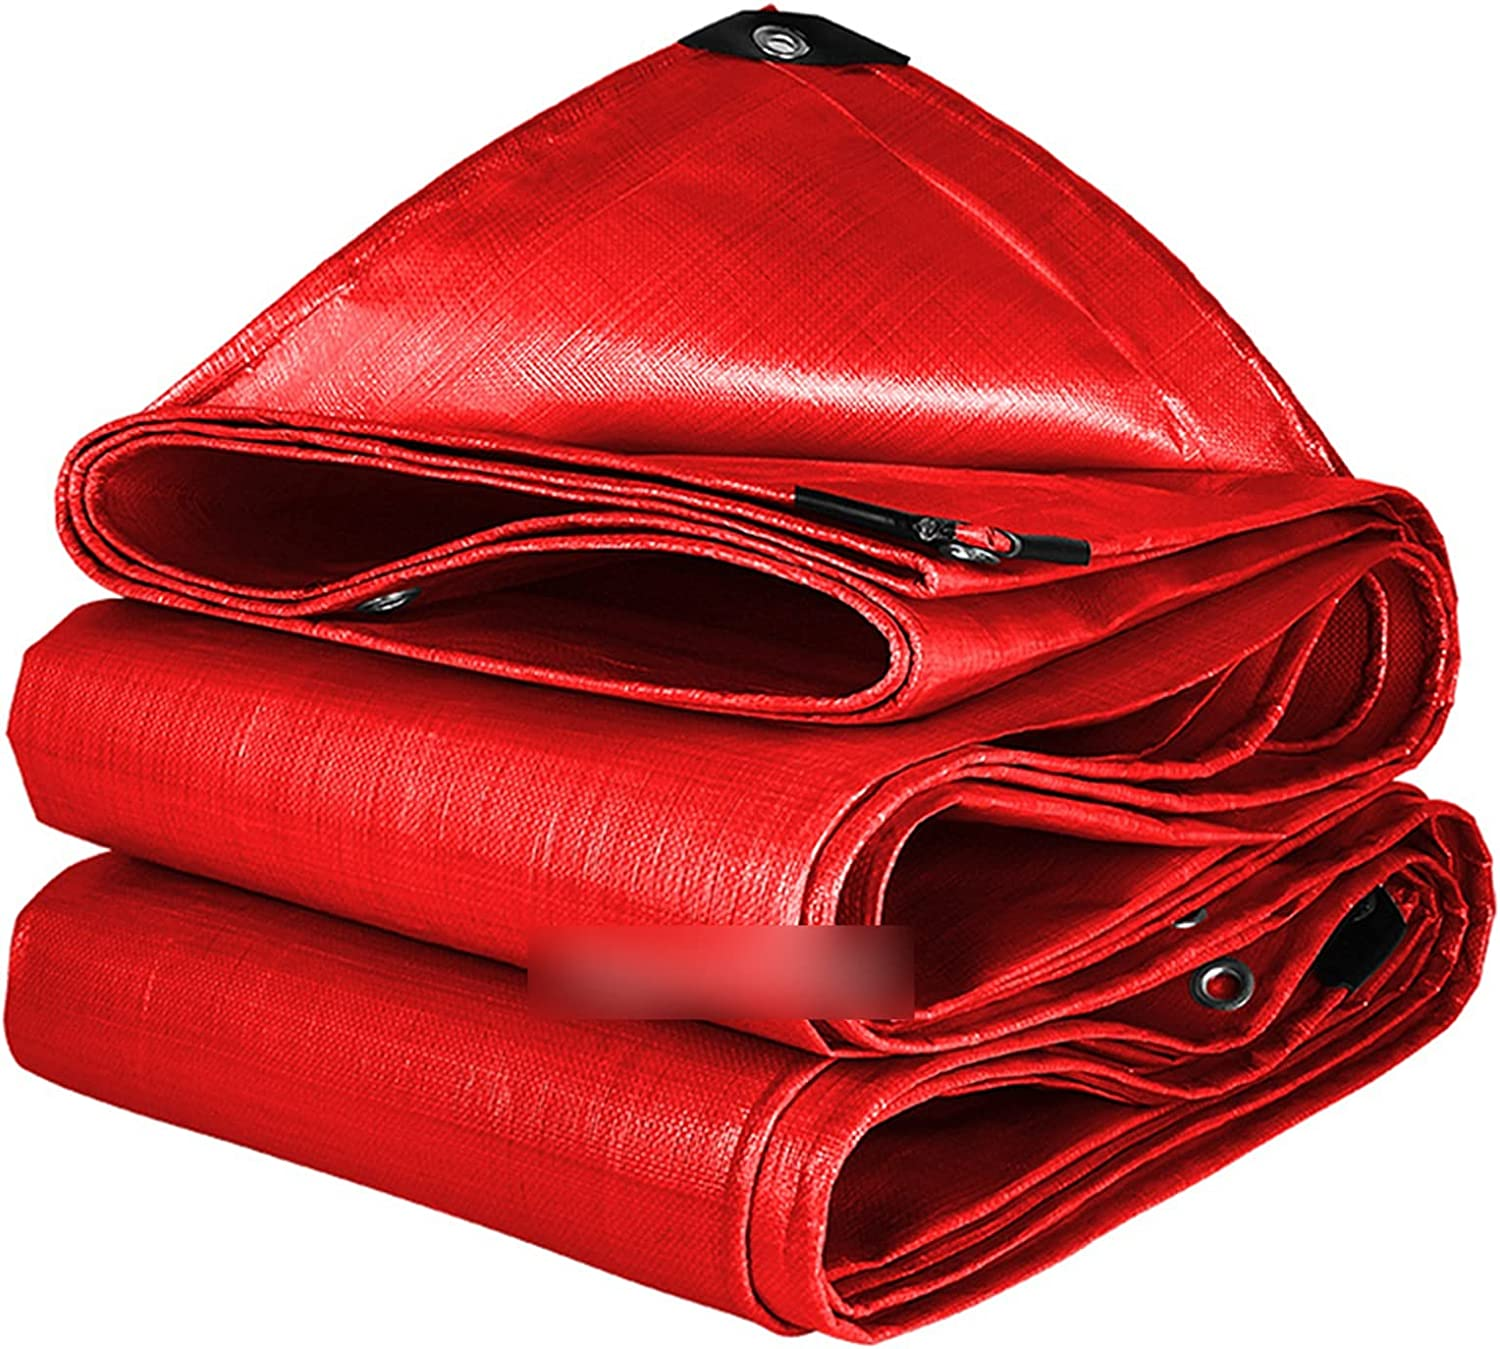 ZHYLing Red PE Max 41% OFF Rainproof Cloth Tarpaulin Outdoor Awning Shading Weekly update